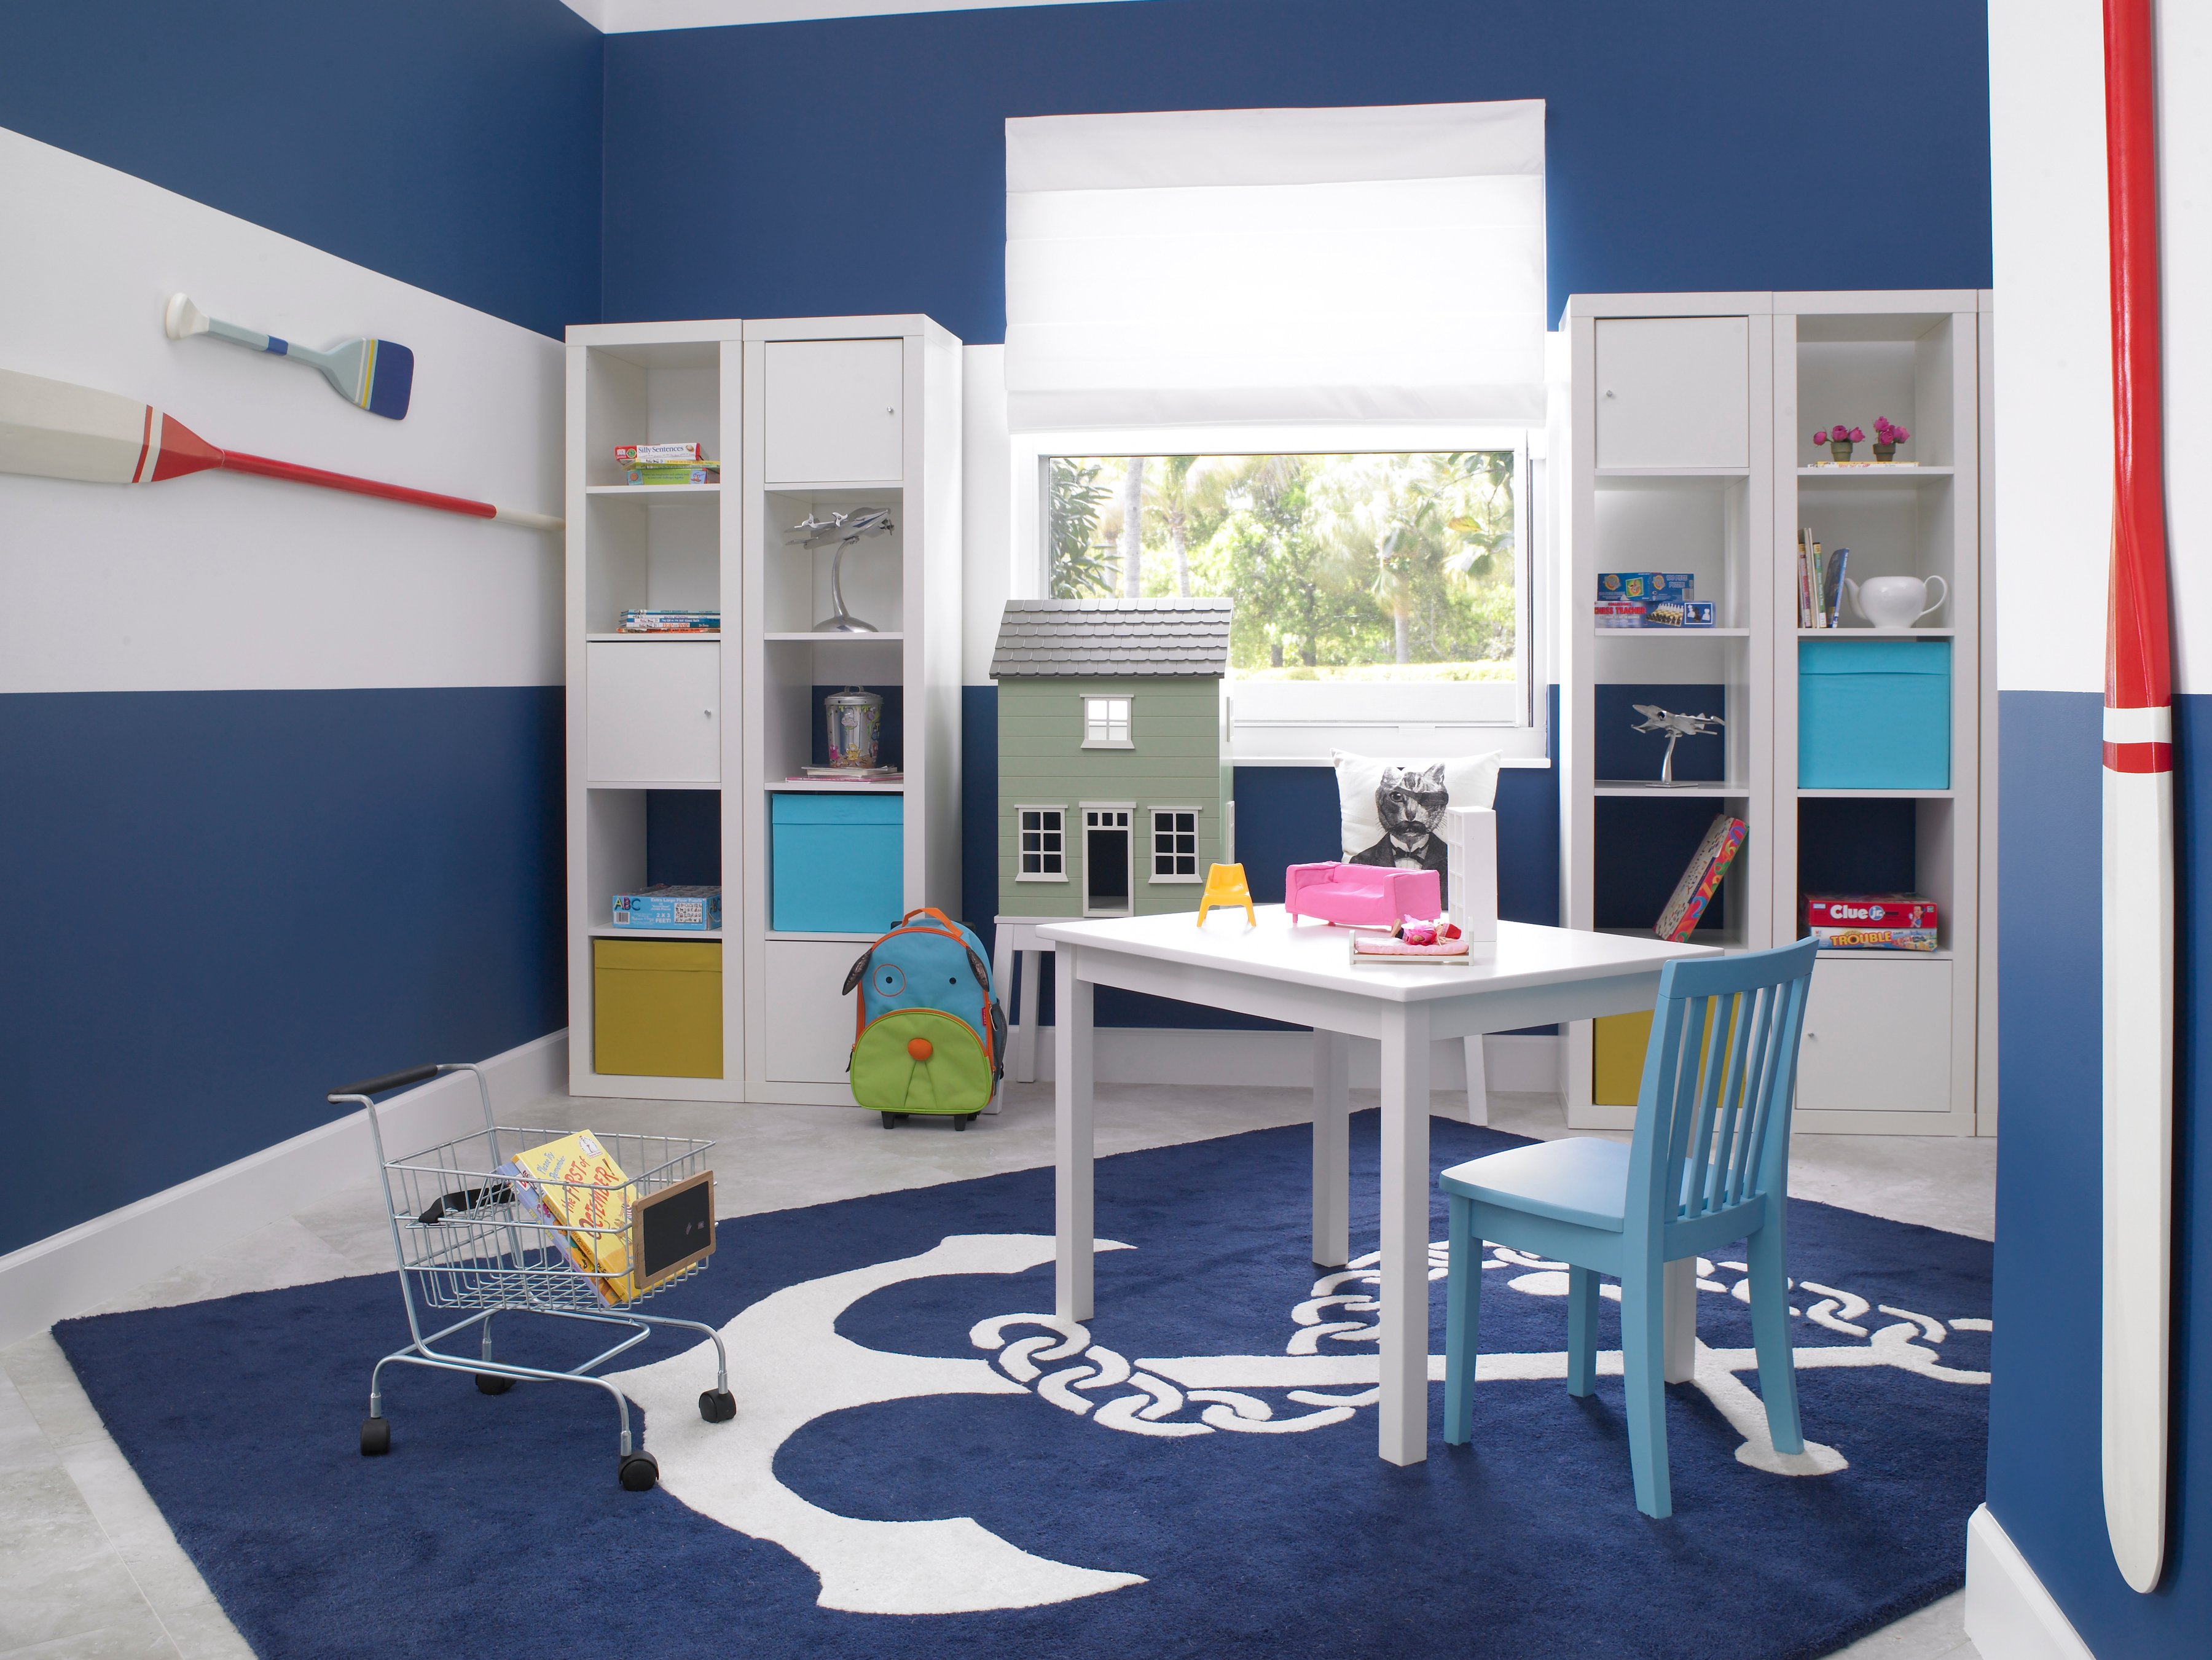 The play room is full of bright, fun colors, and the rug is emblazoned with an anchor. There is plenty of storage against the back wall for toys and games. The walls are in ultra-thick stripes, and decorated with paddles in blue, white, and red.